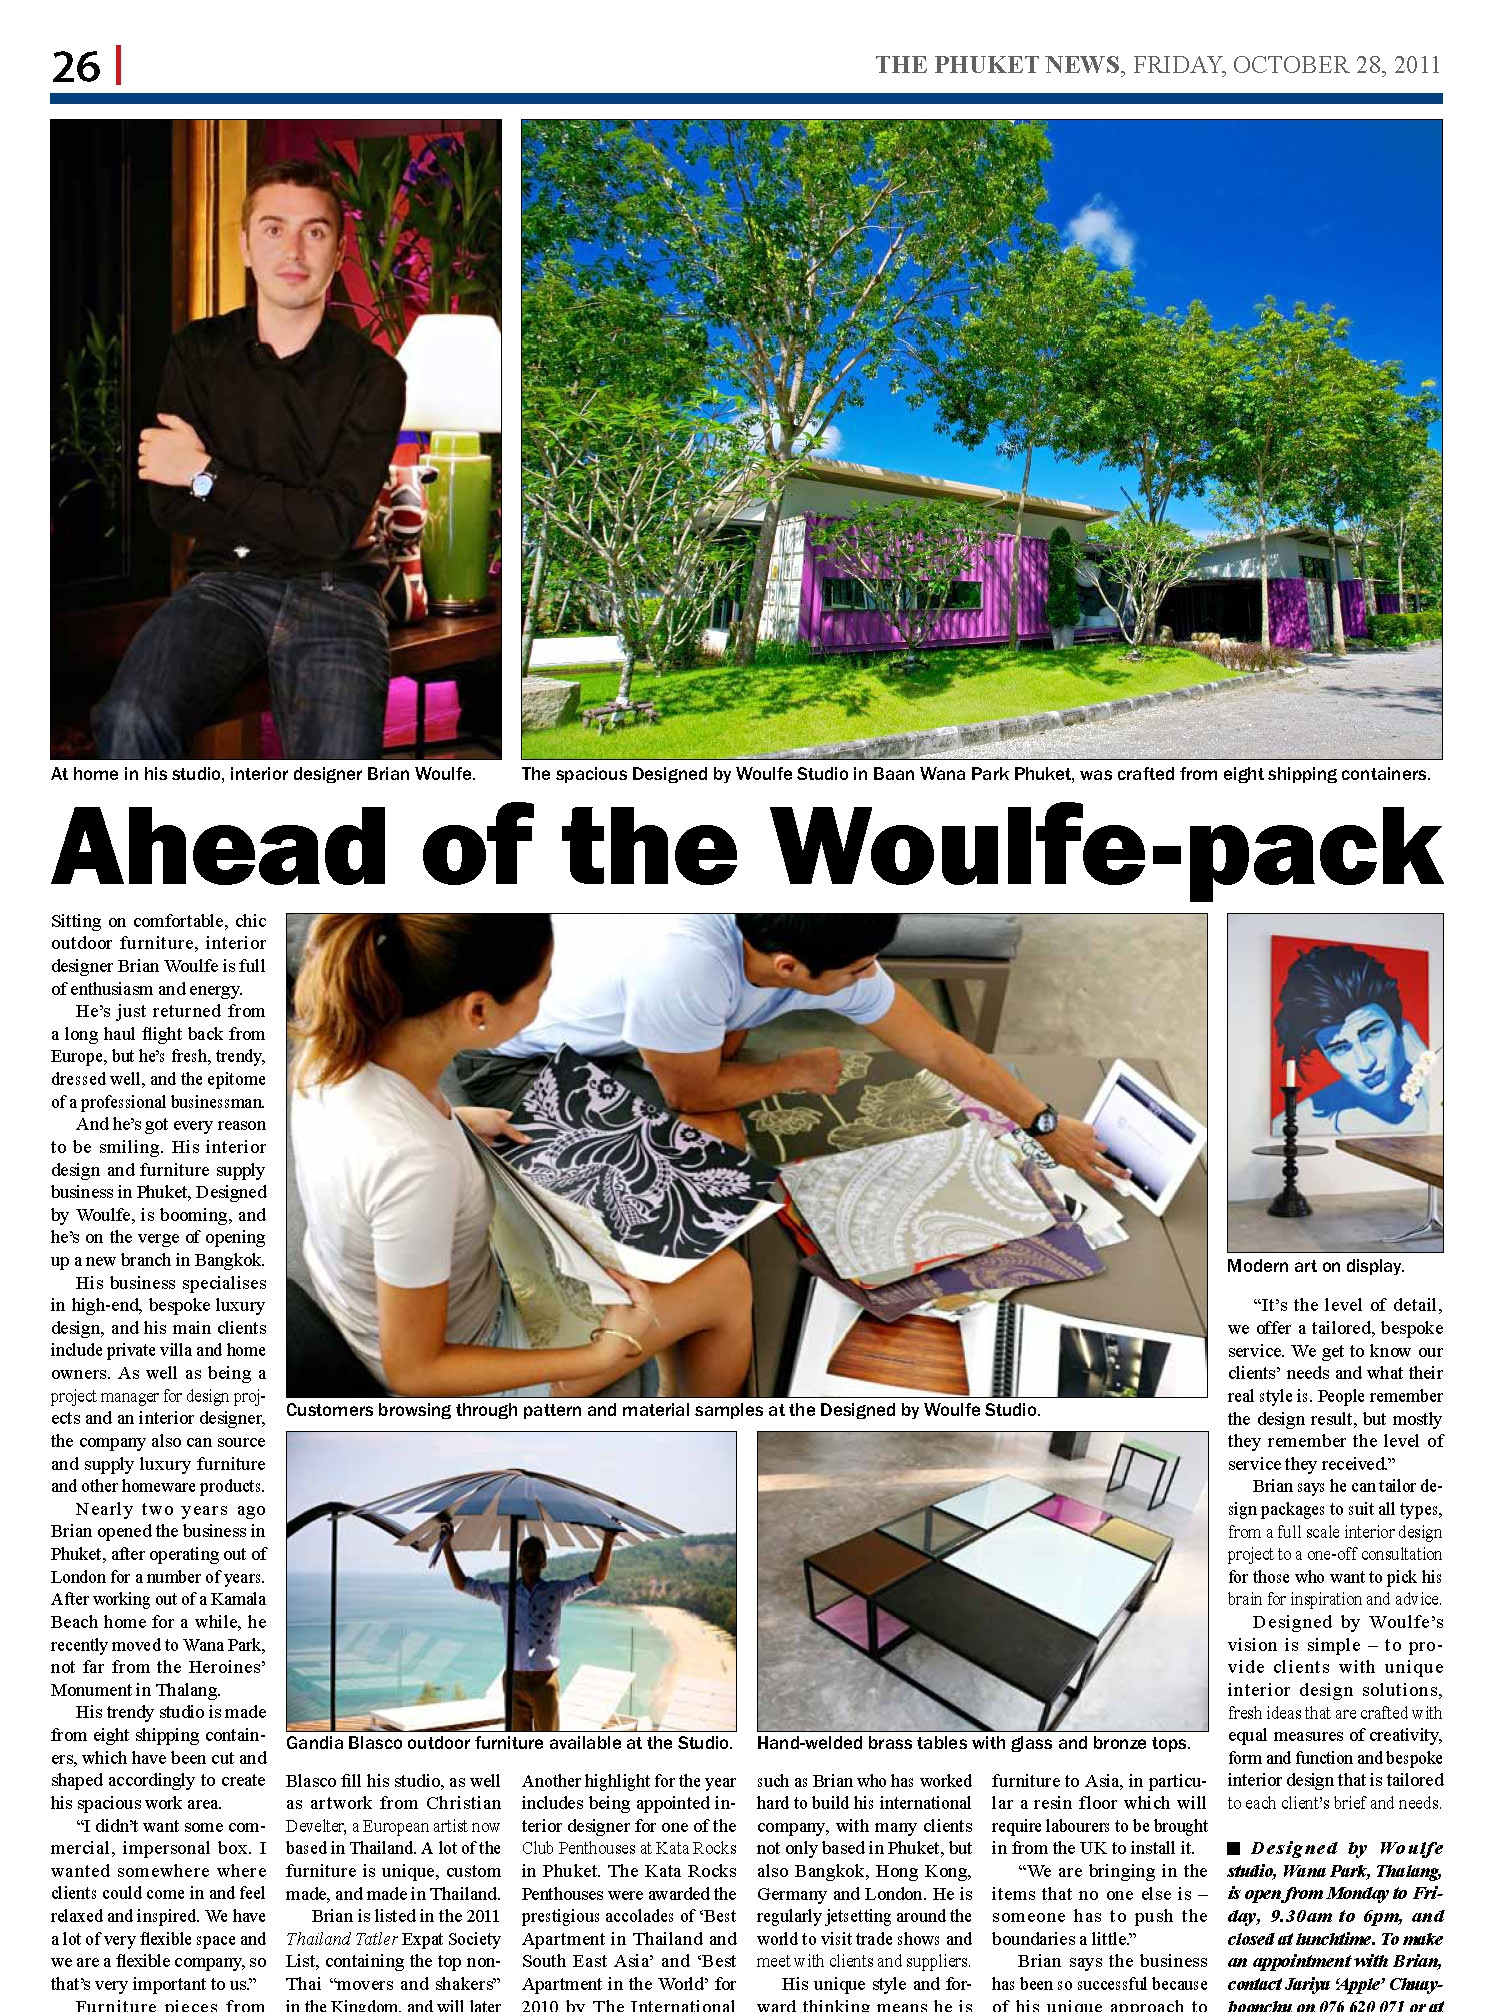 Brian Woulfe, Designed by Woulfe - The Phuket News